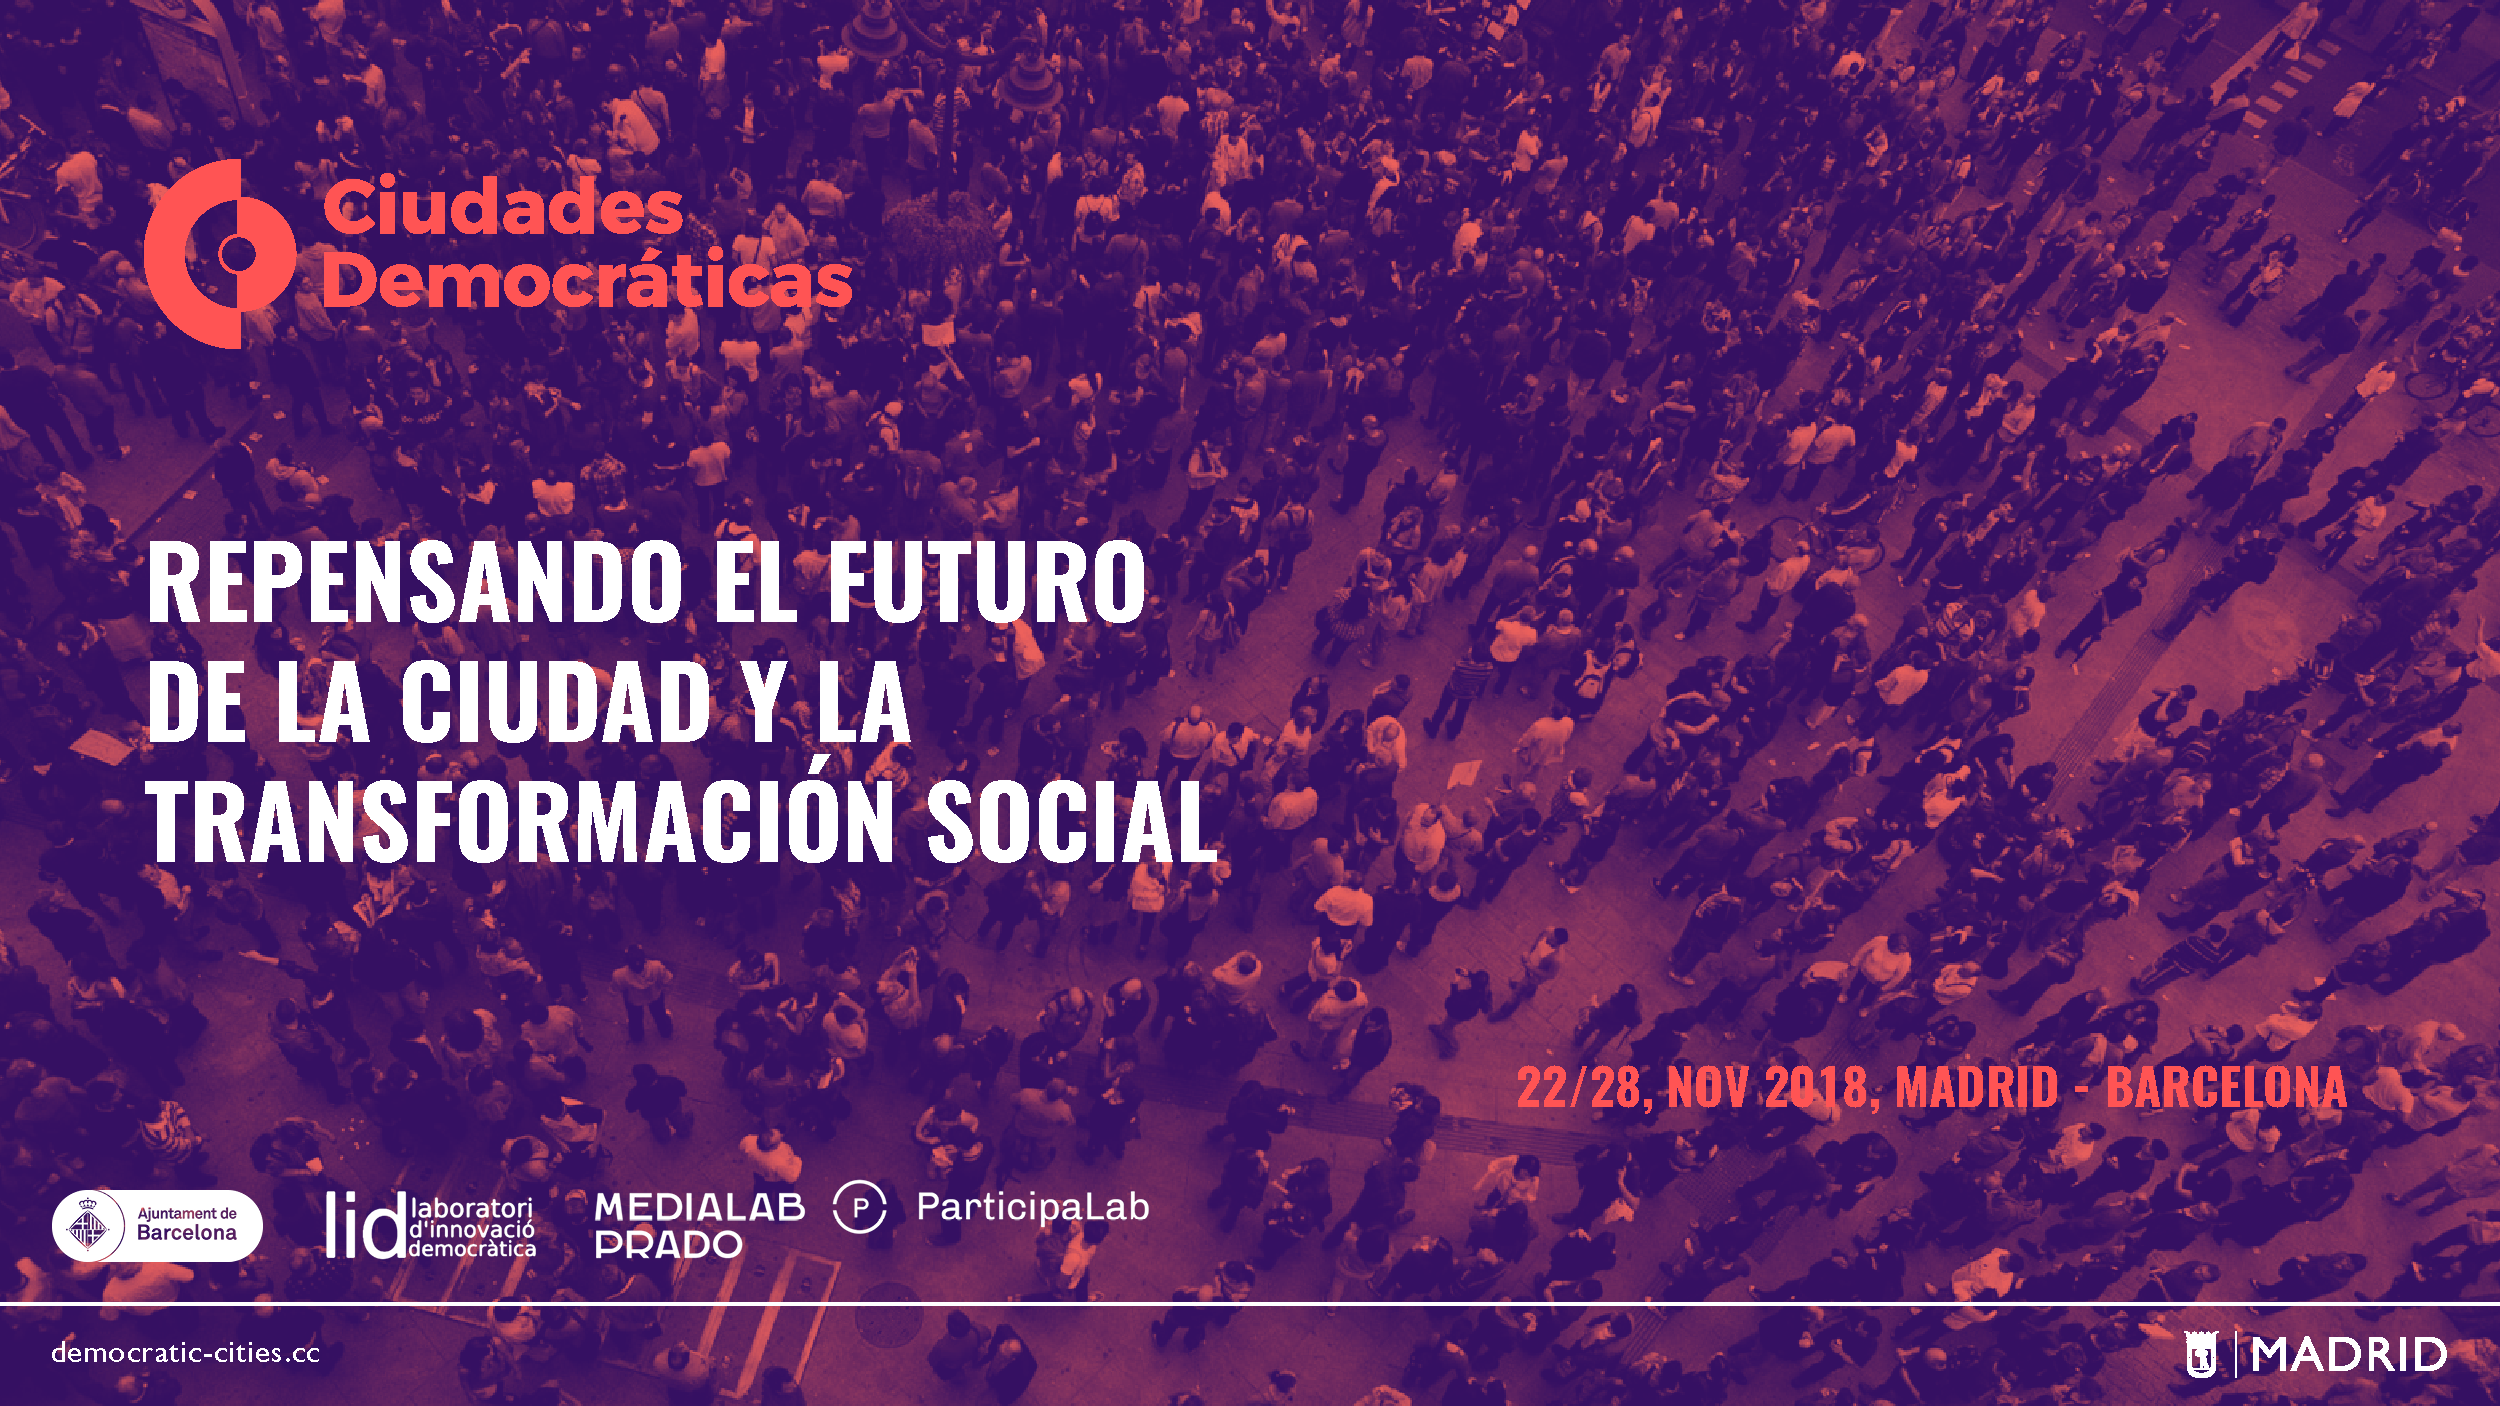 Democratic Cities: rethinking the future of cities and social transformation